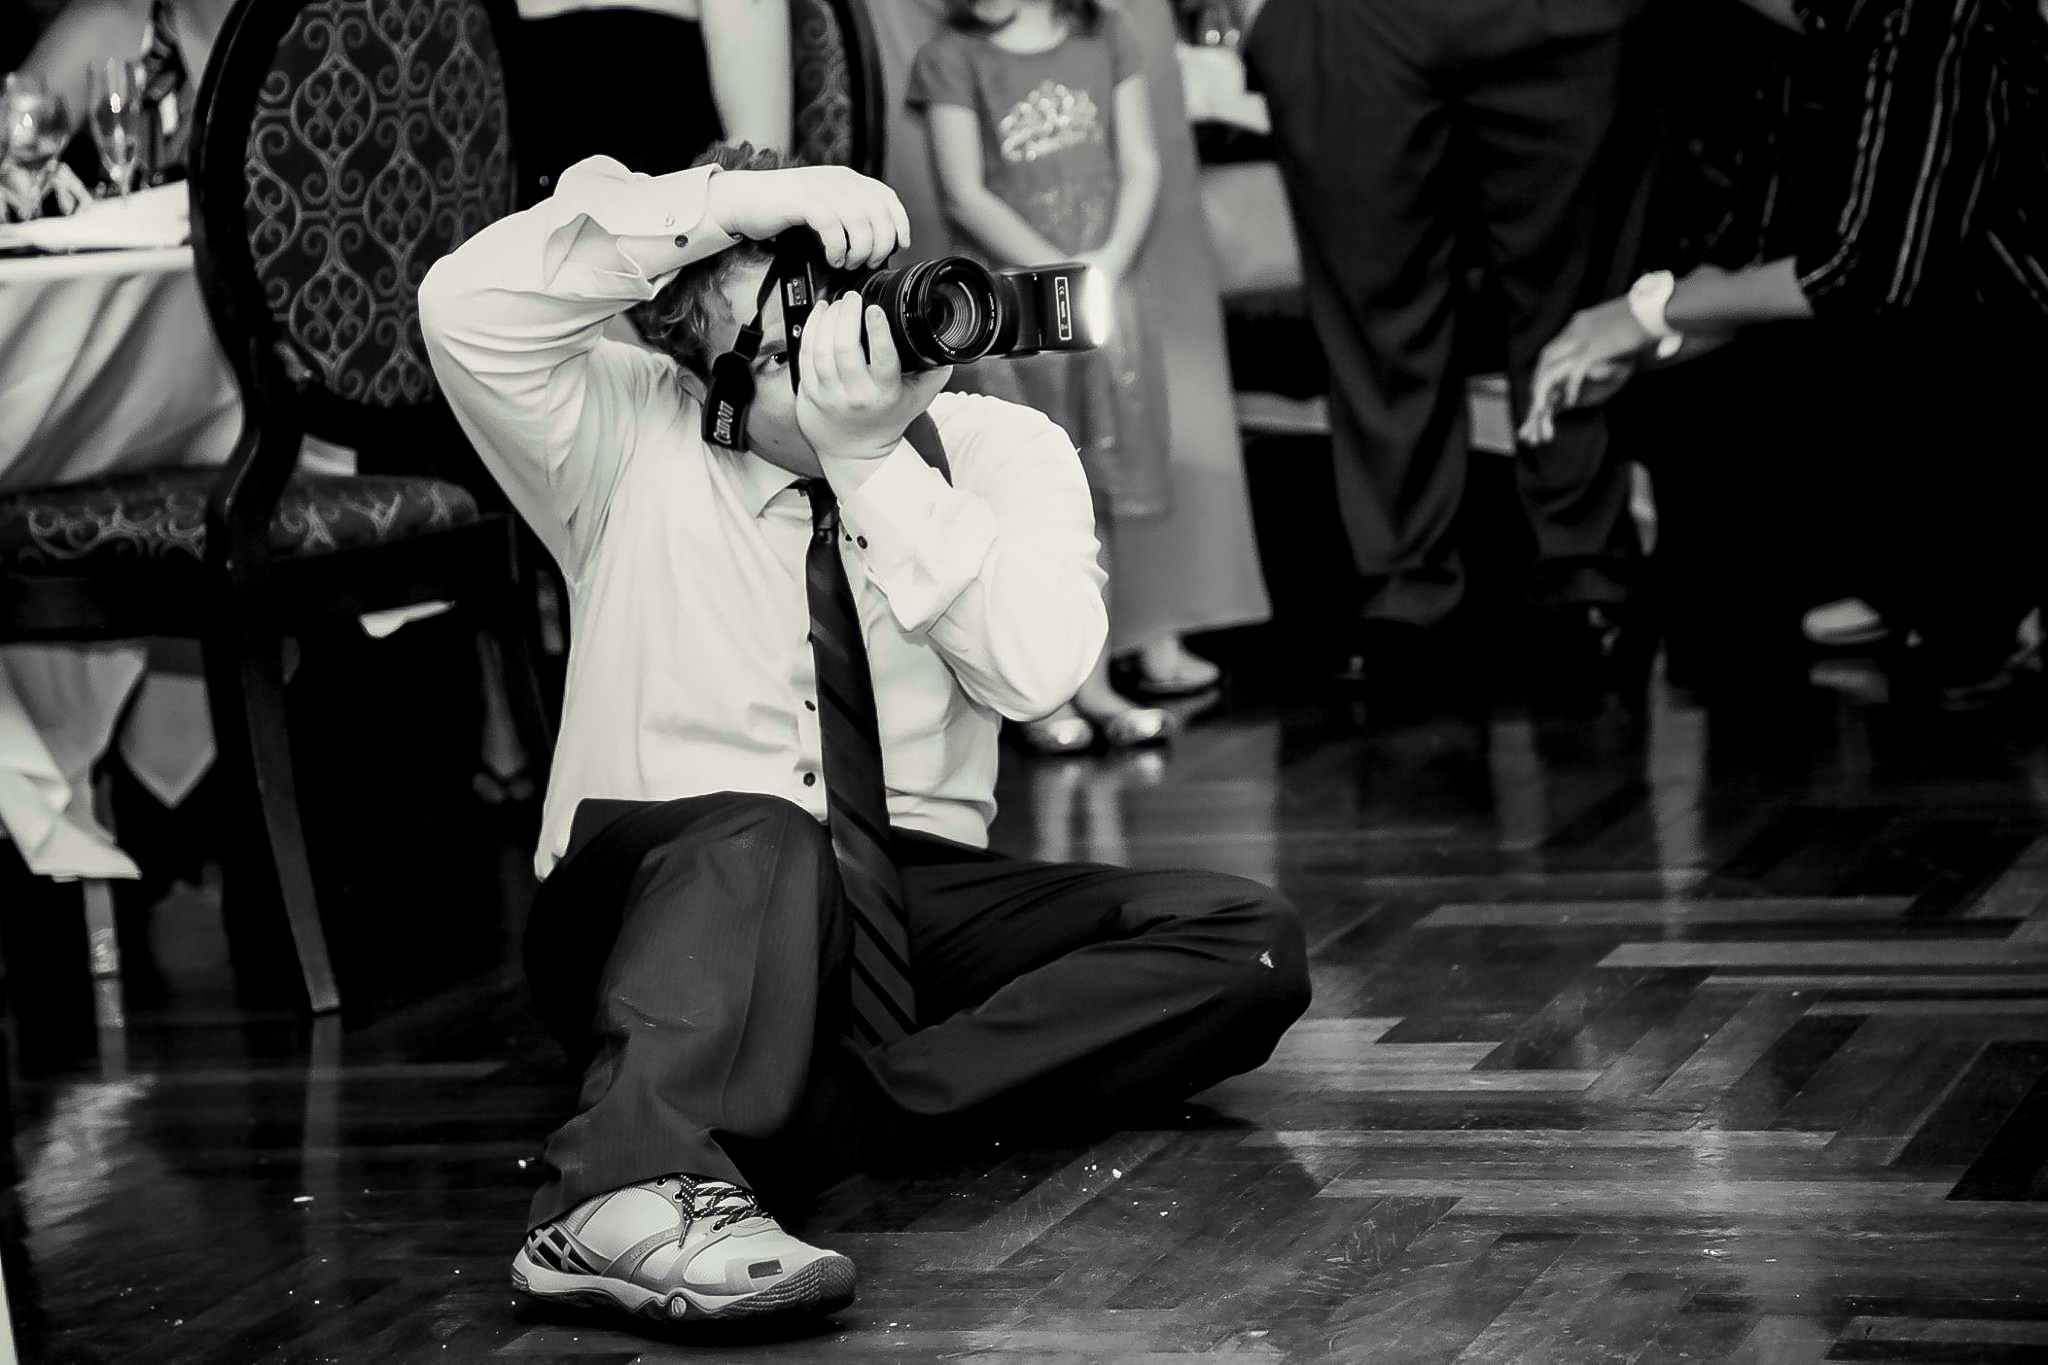 And that's what a passionate wedding photographer does. : ) - Louis Torres